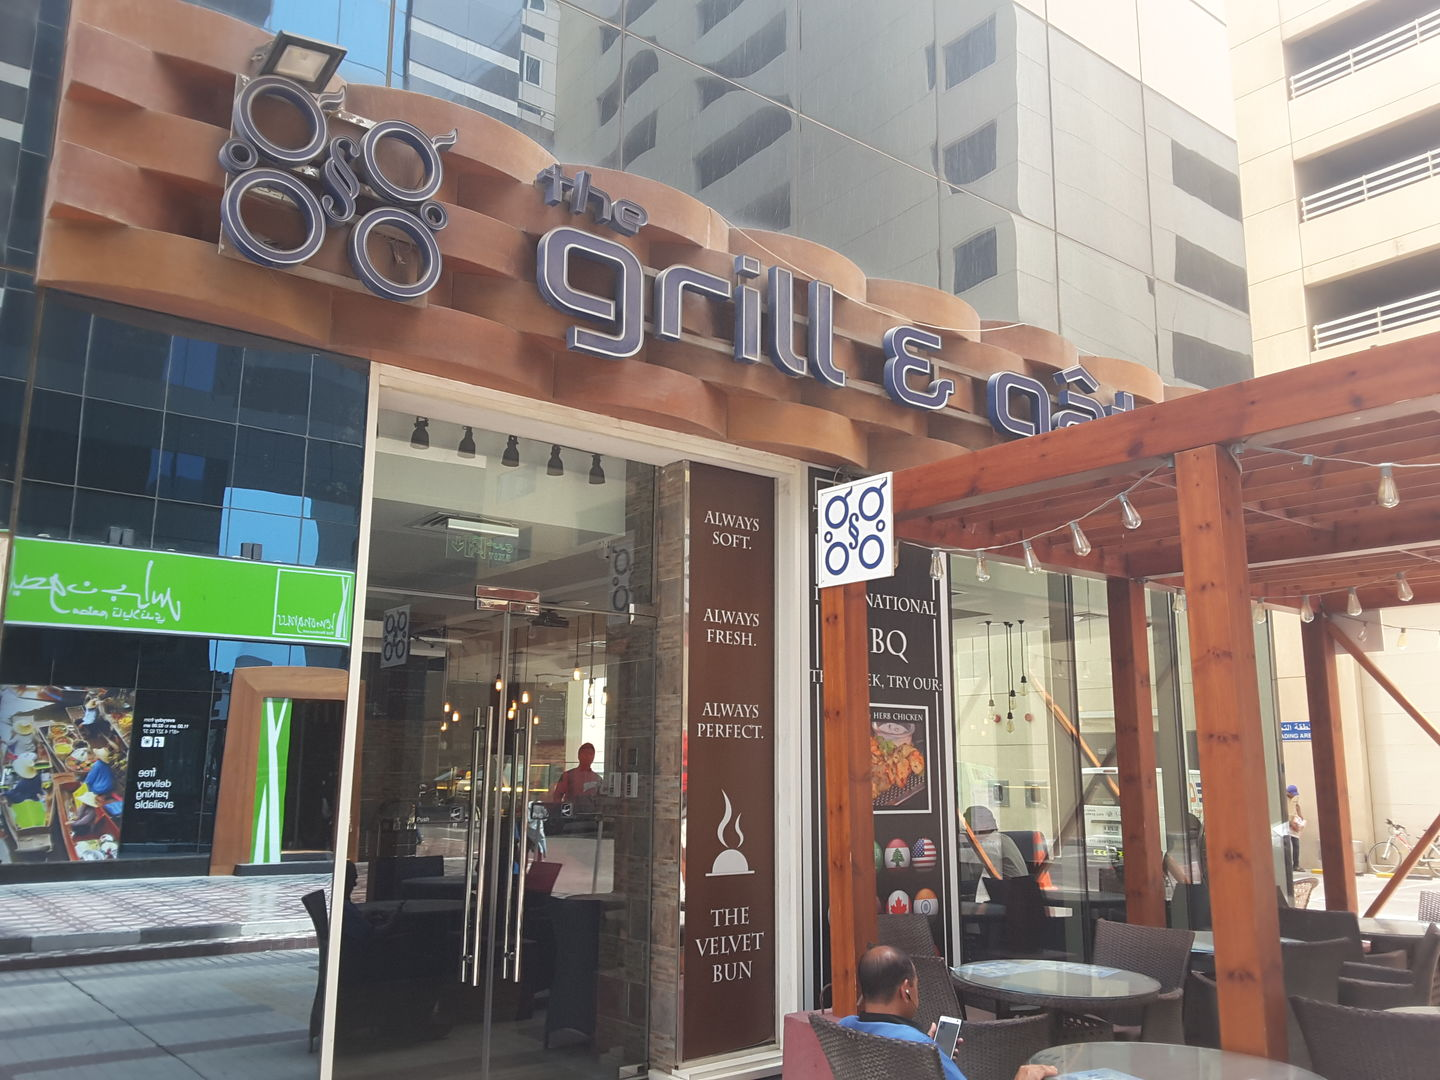 HiDubai-business-the-grill-gateau-food-beverage-restaurants-bars-sheikh-zayed-road-2-trade-centre-2-dubai-2